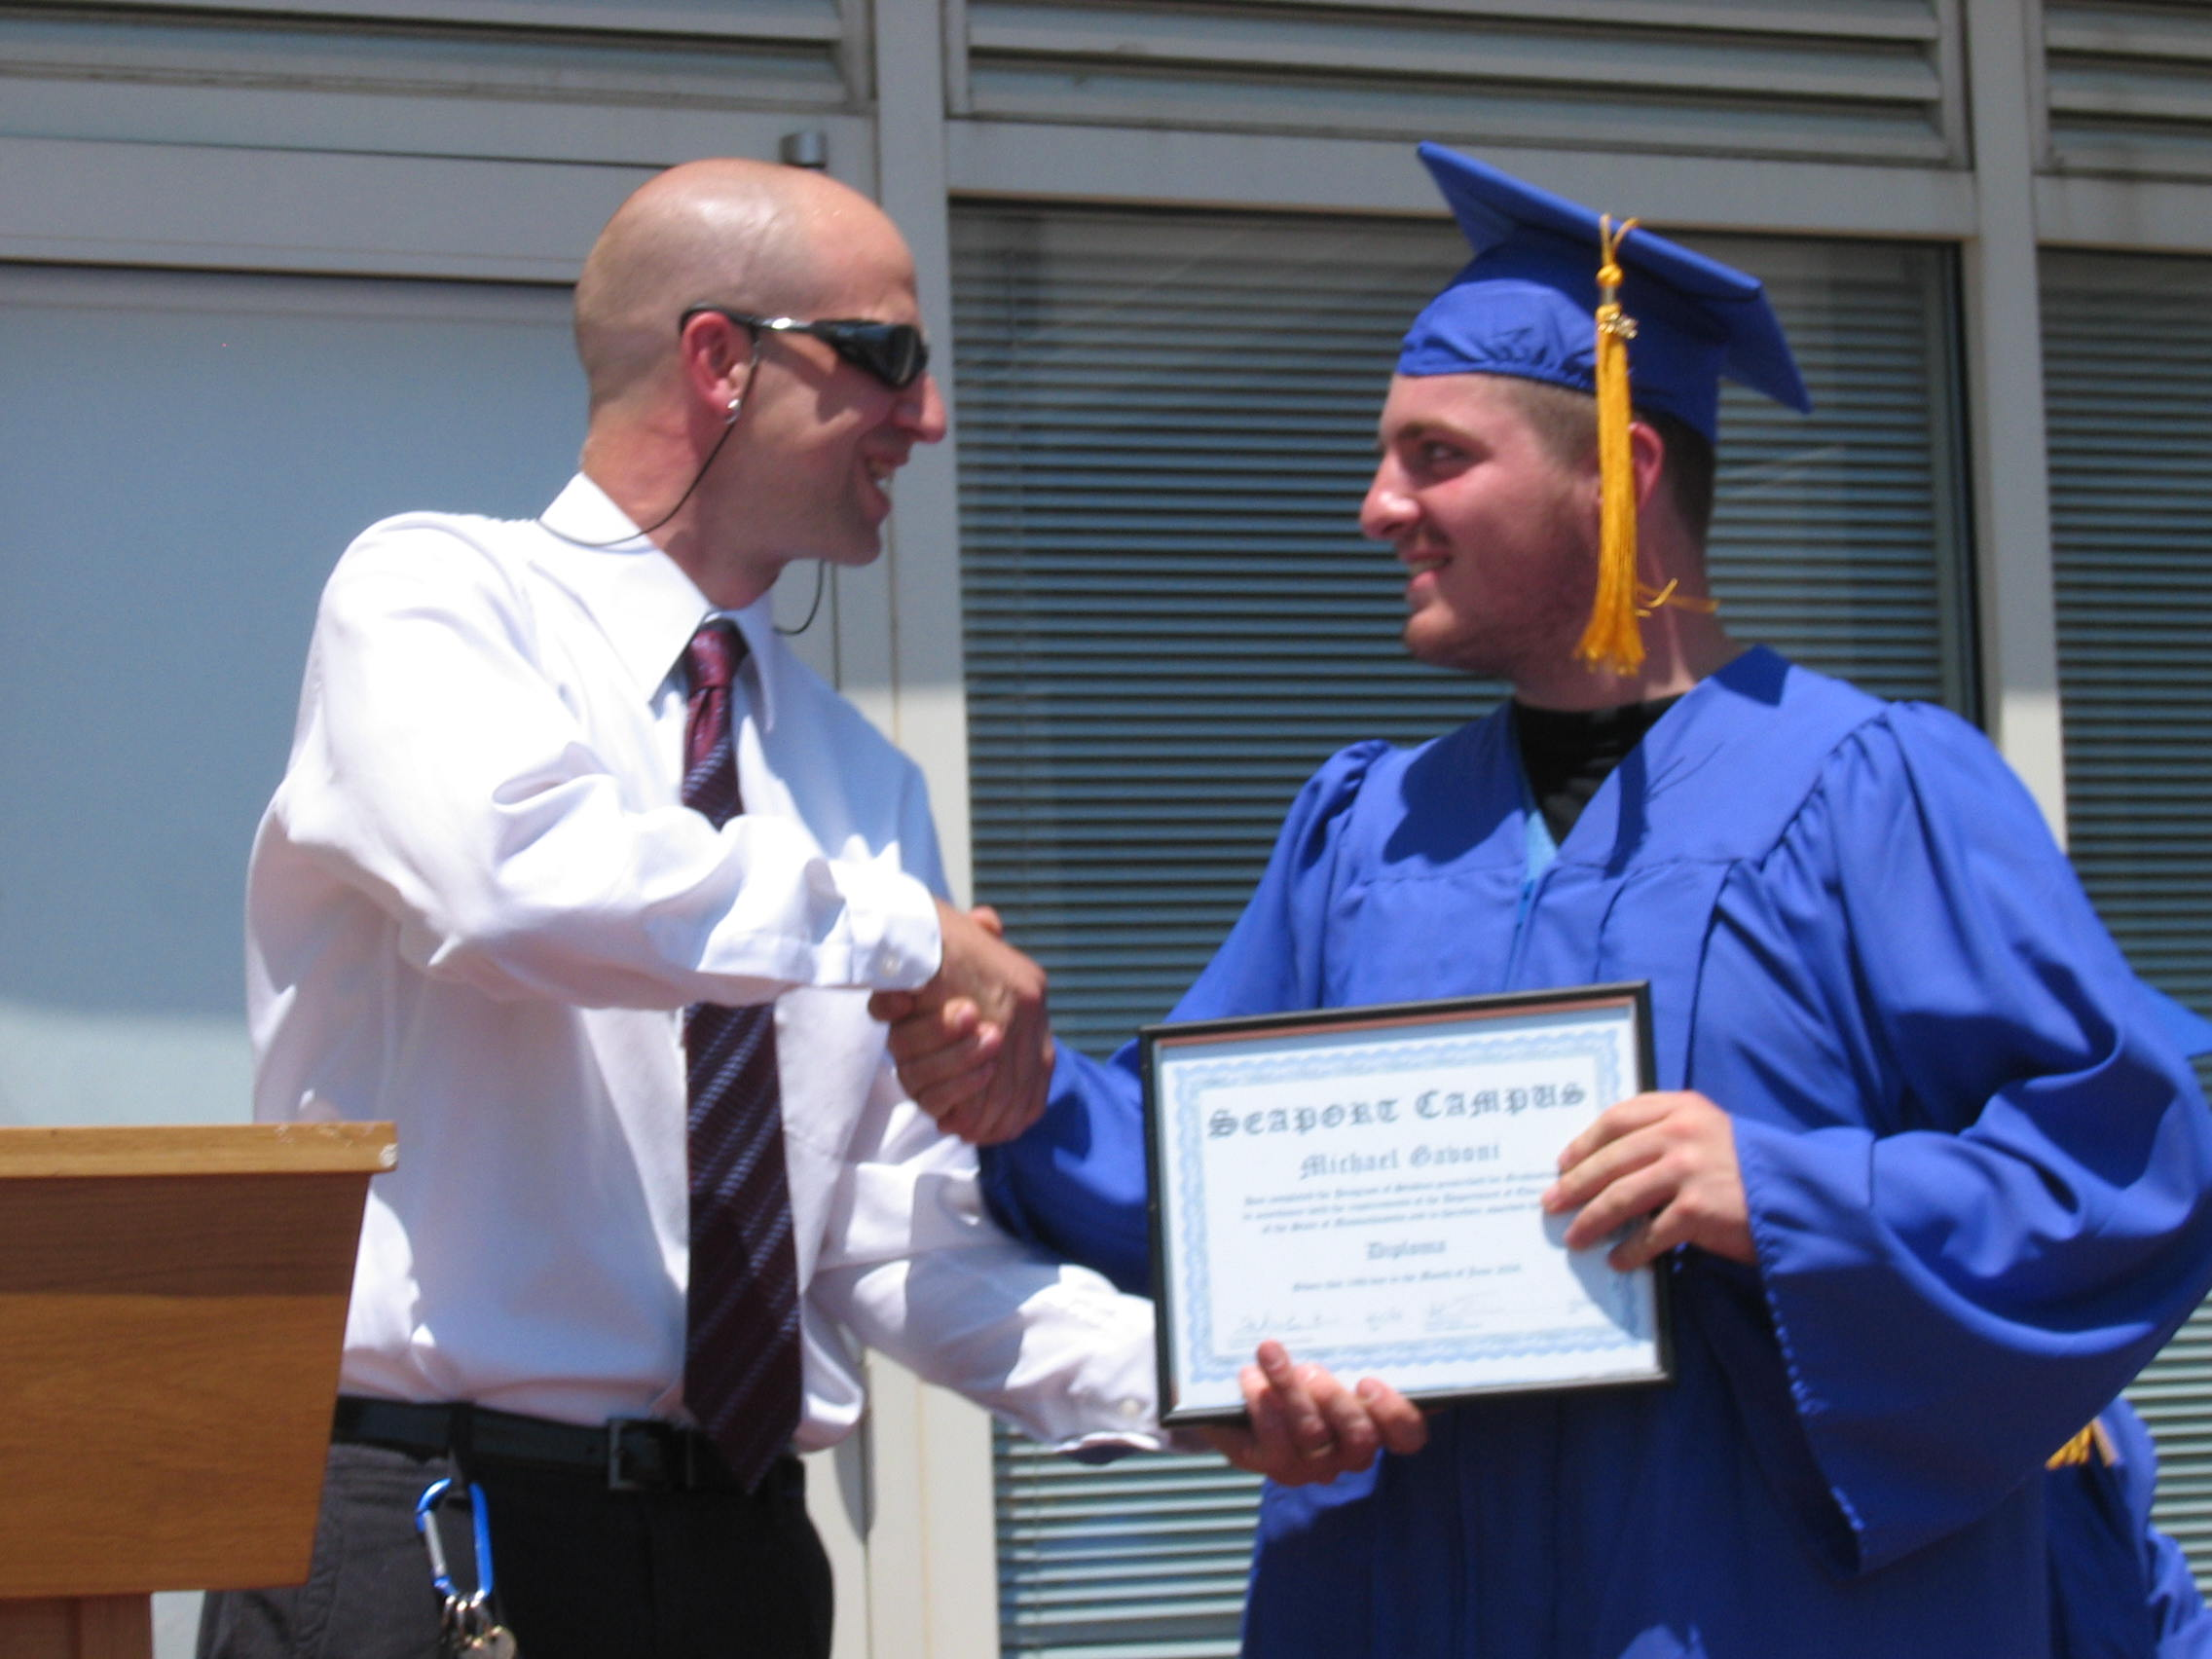 Giving a diploma to a student